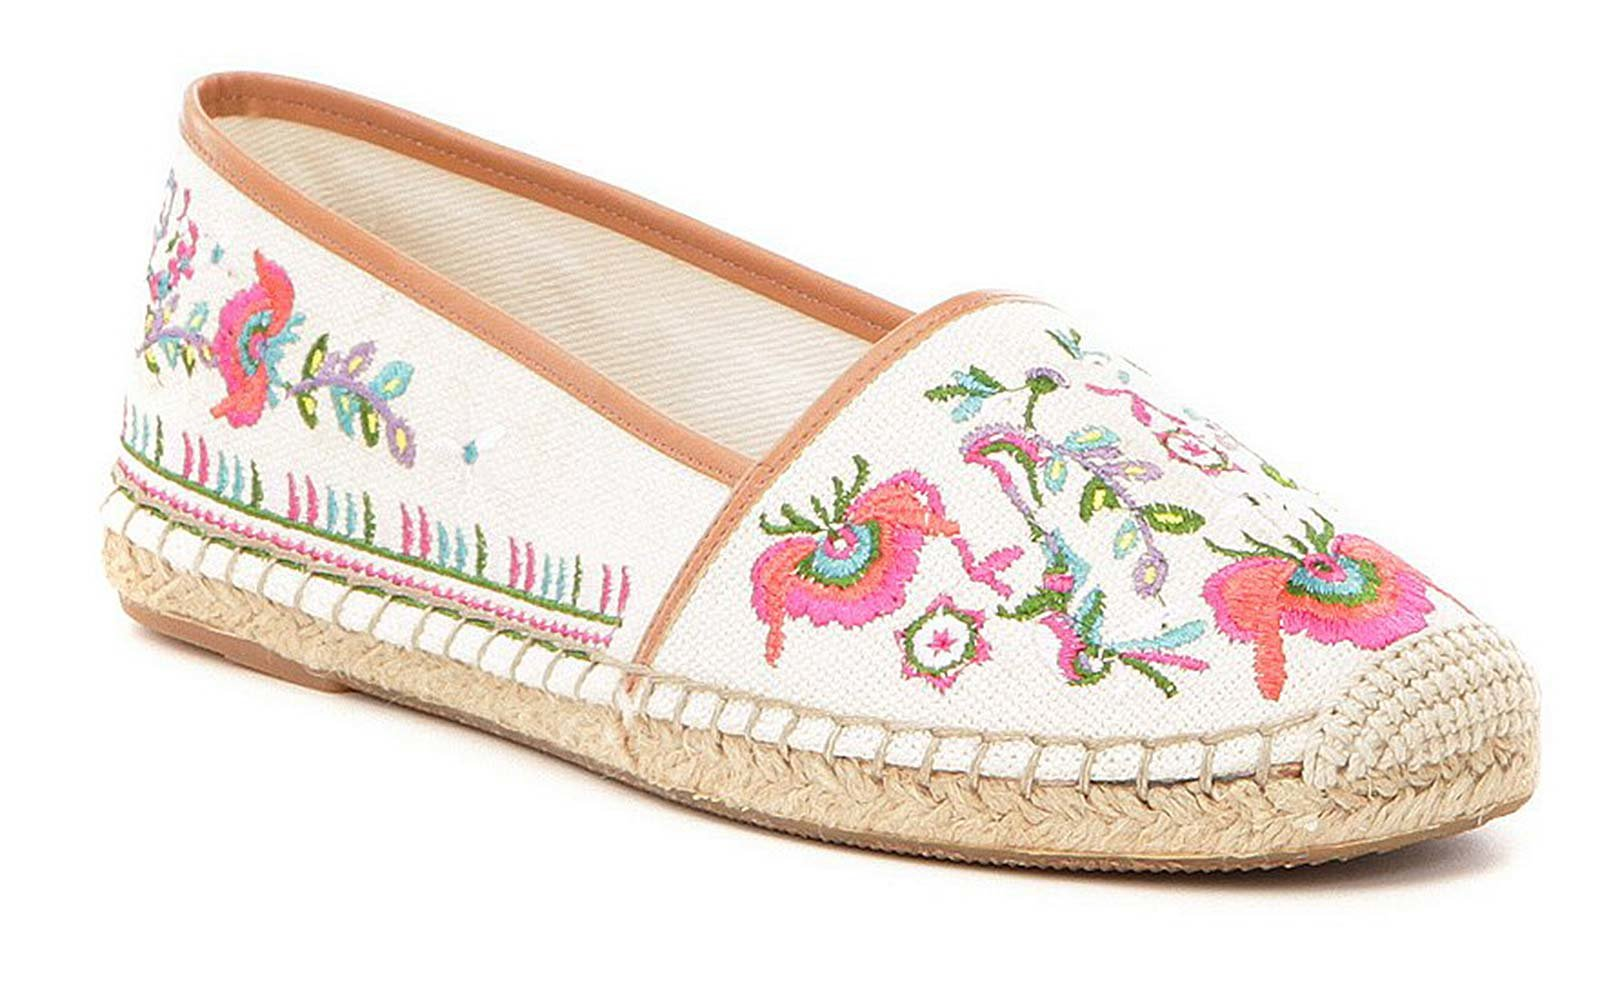 Gianni Bini Pema Floral Embroidered Canvas Espadrille Flats